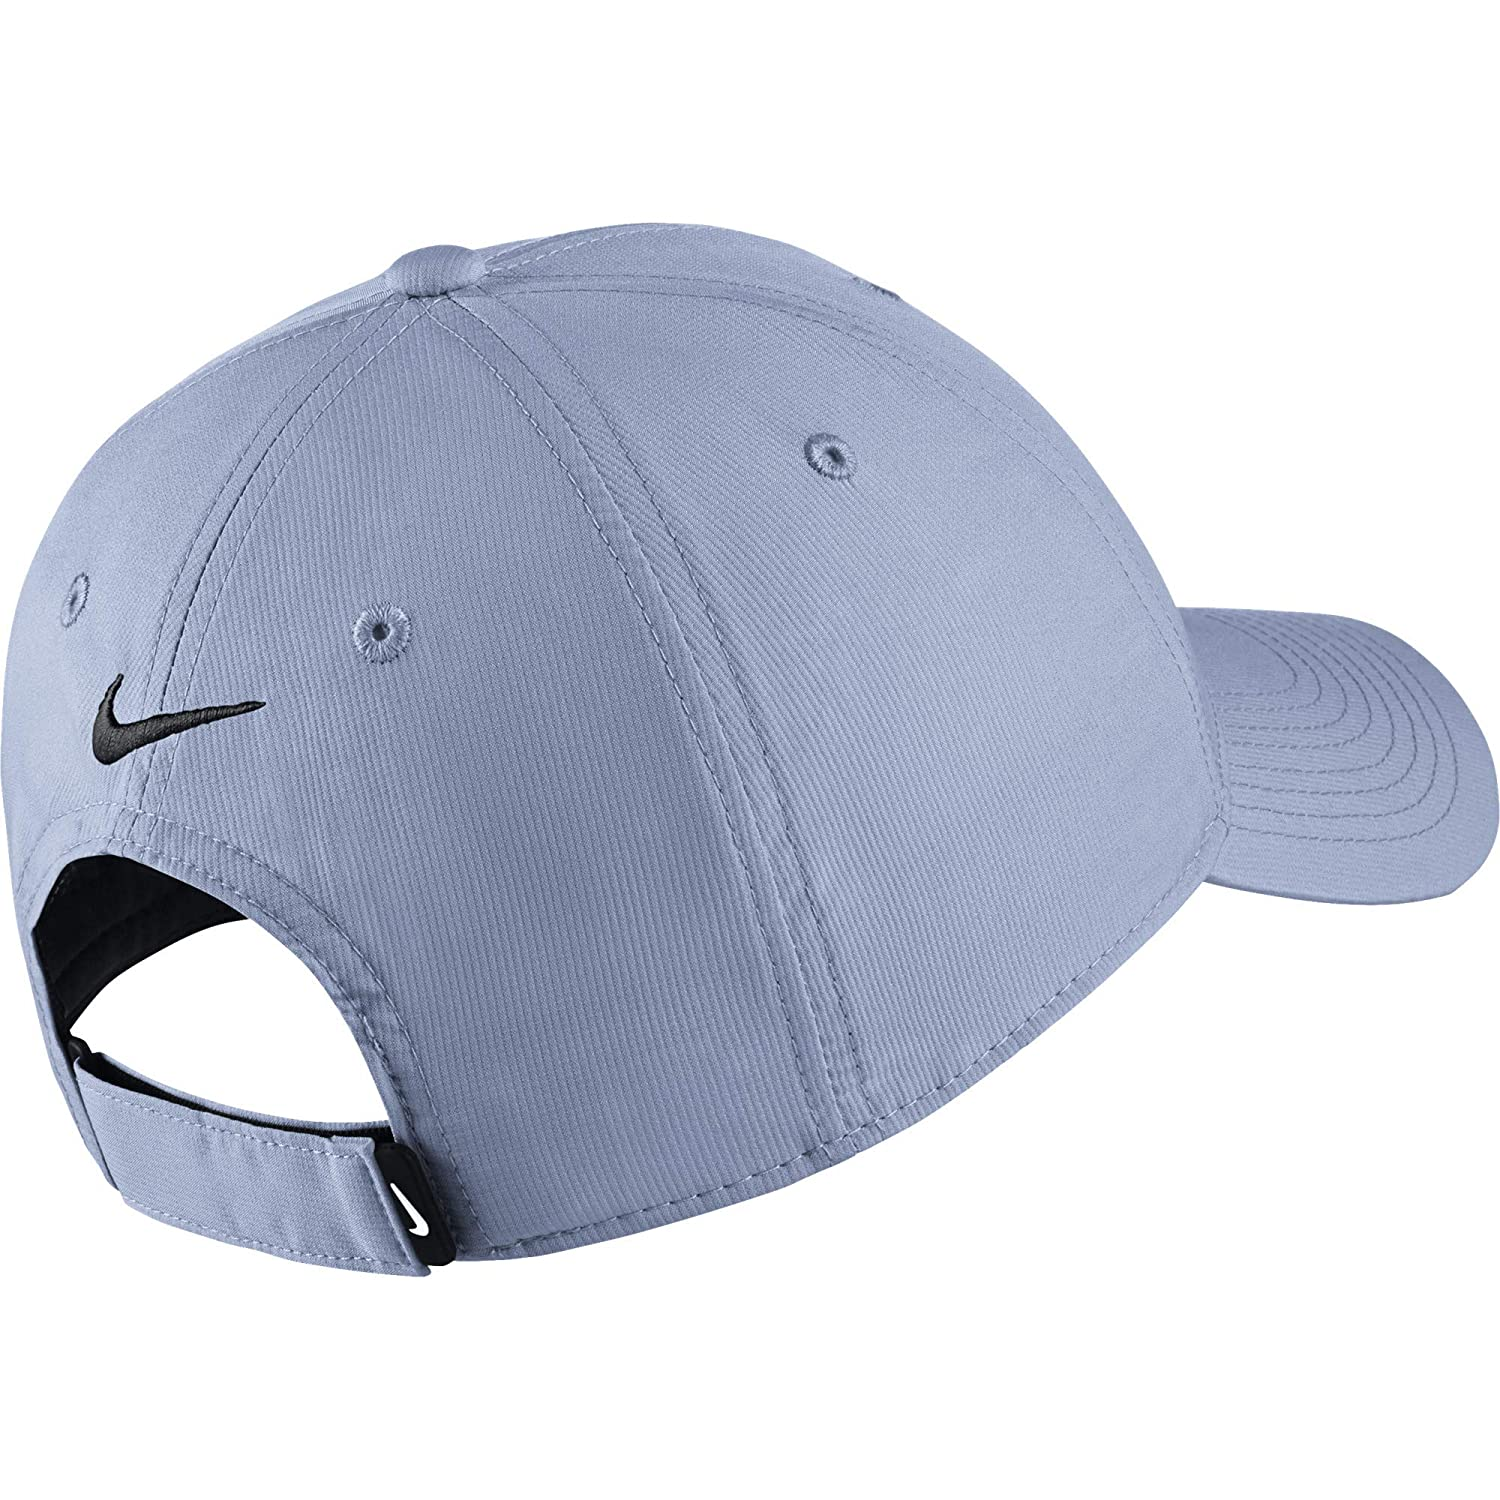 d5838b1d9a3 Nike New Legacy 91 Cap Baseball Sports (One Size - Light Blue)   Amazon.co.uk  Clothing